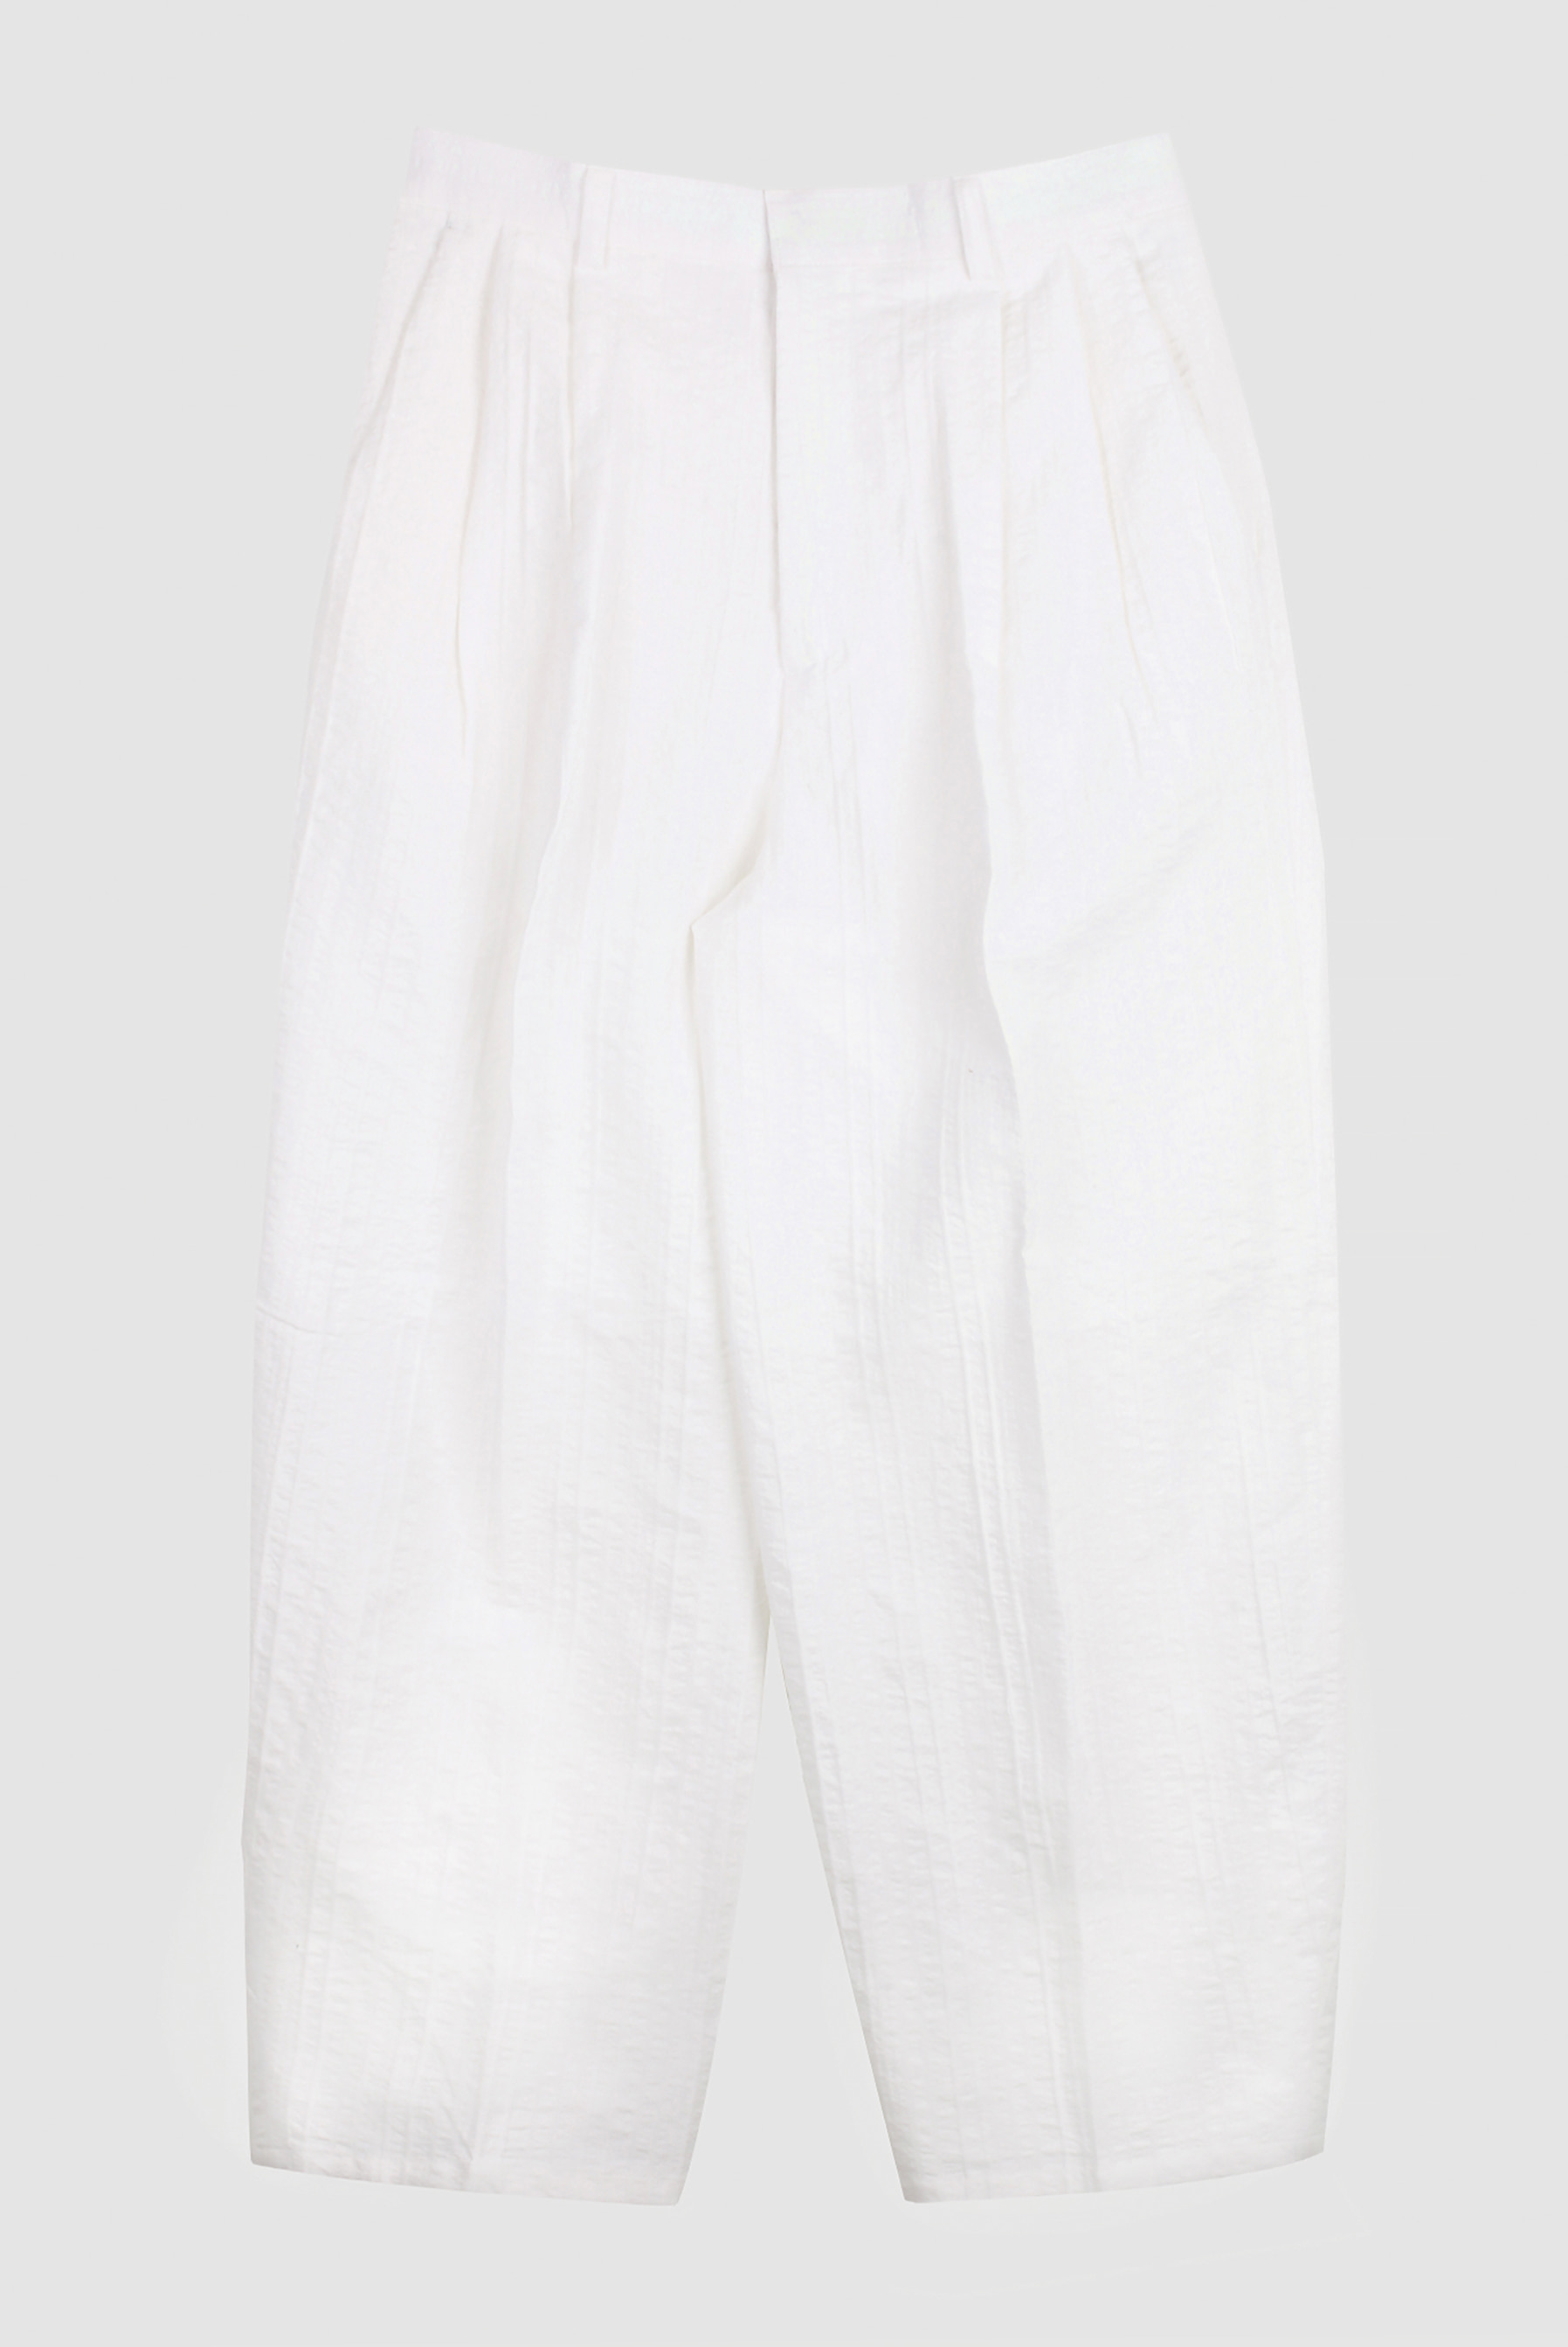 Linen_Slap Nature_Pants